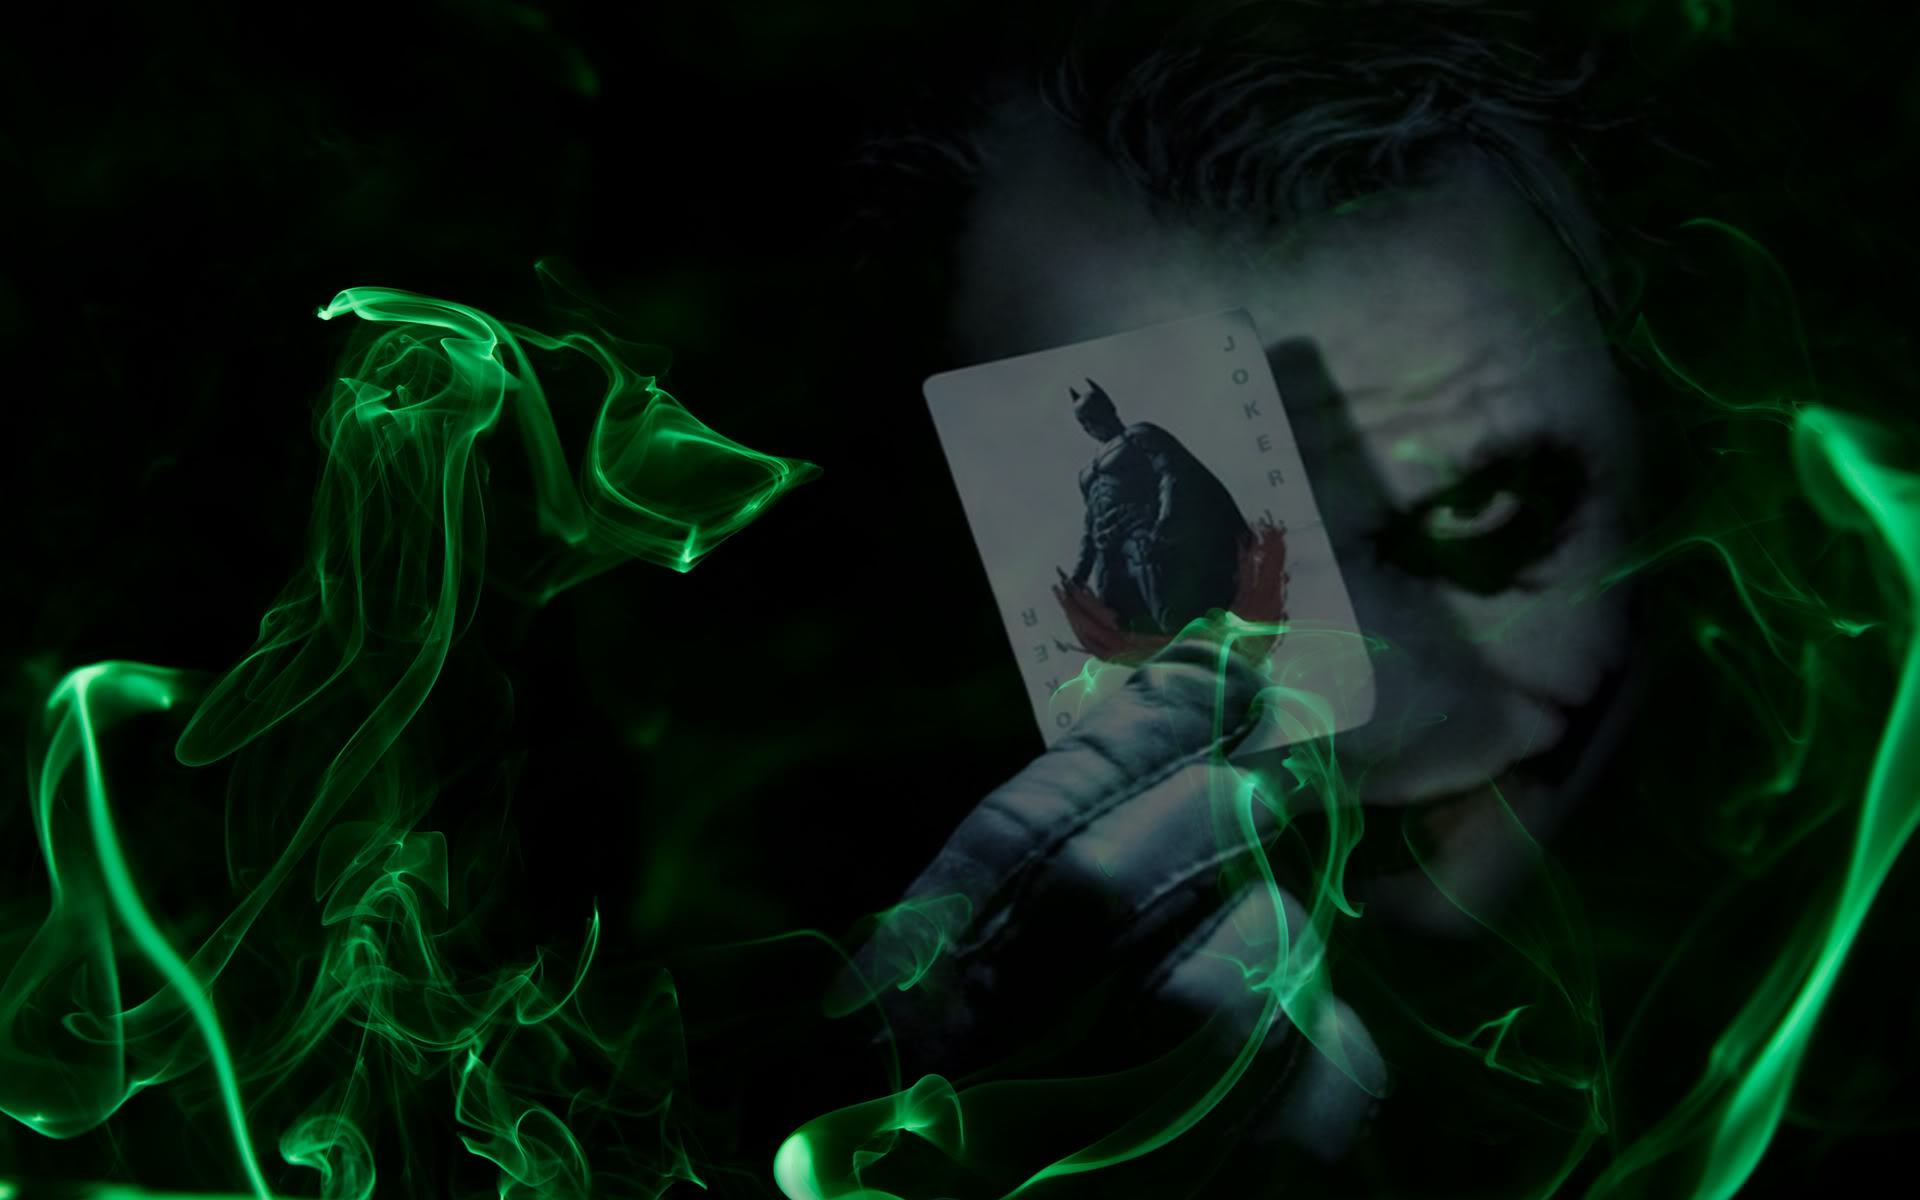 Joker wallpaper   875909 1920x1200